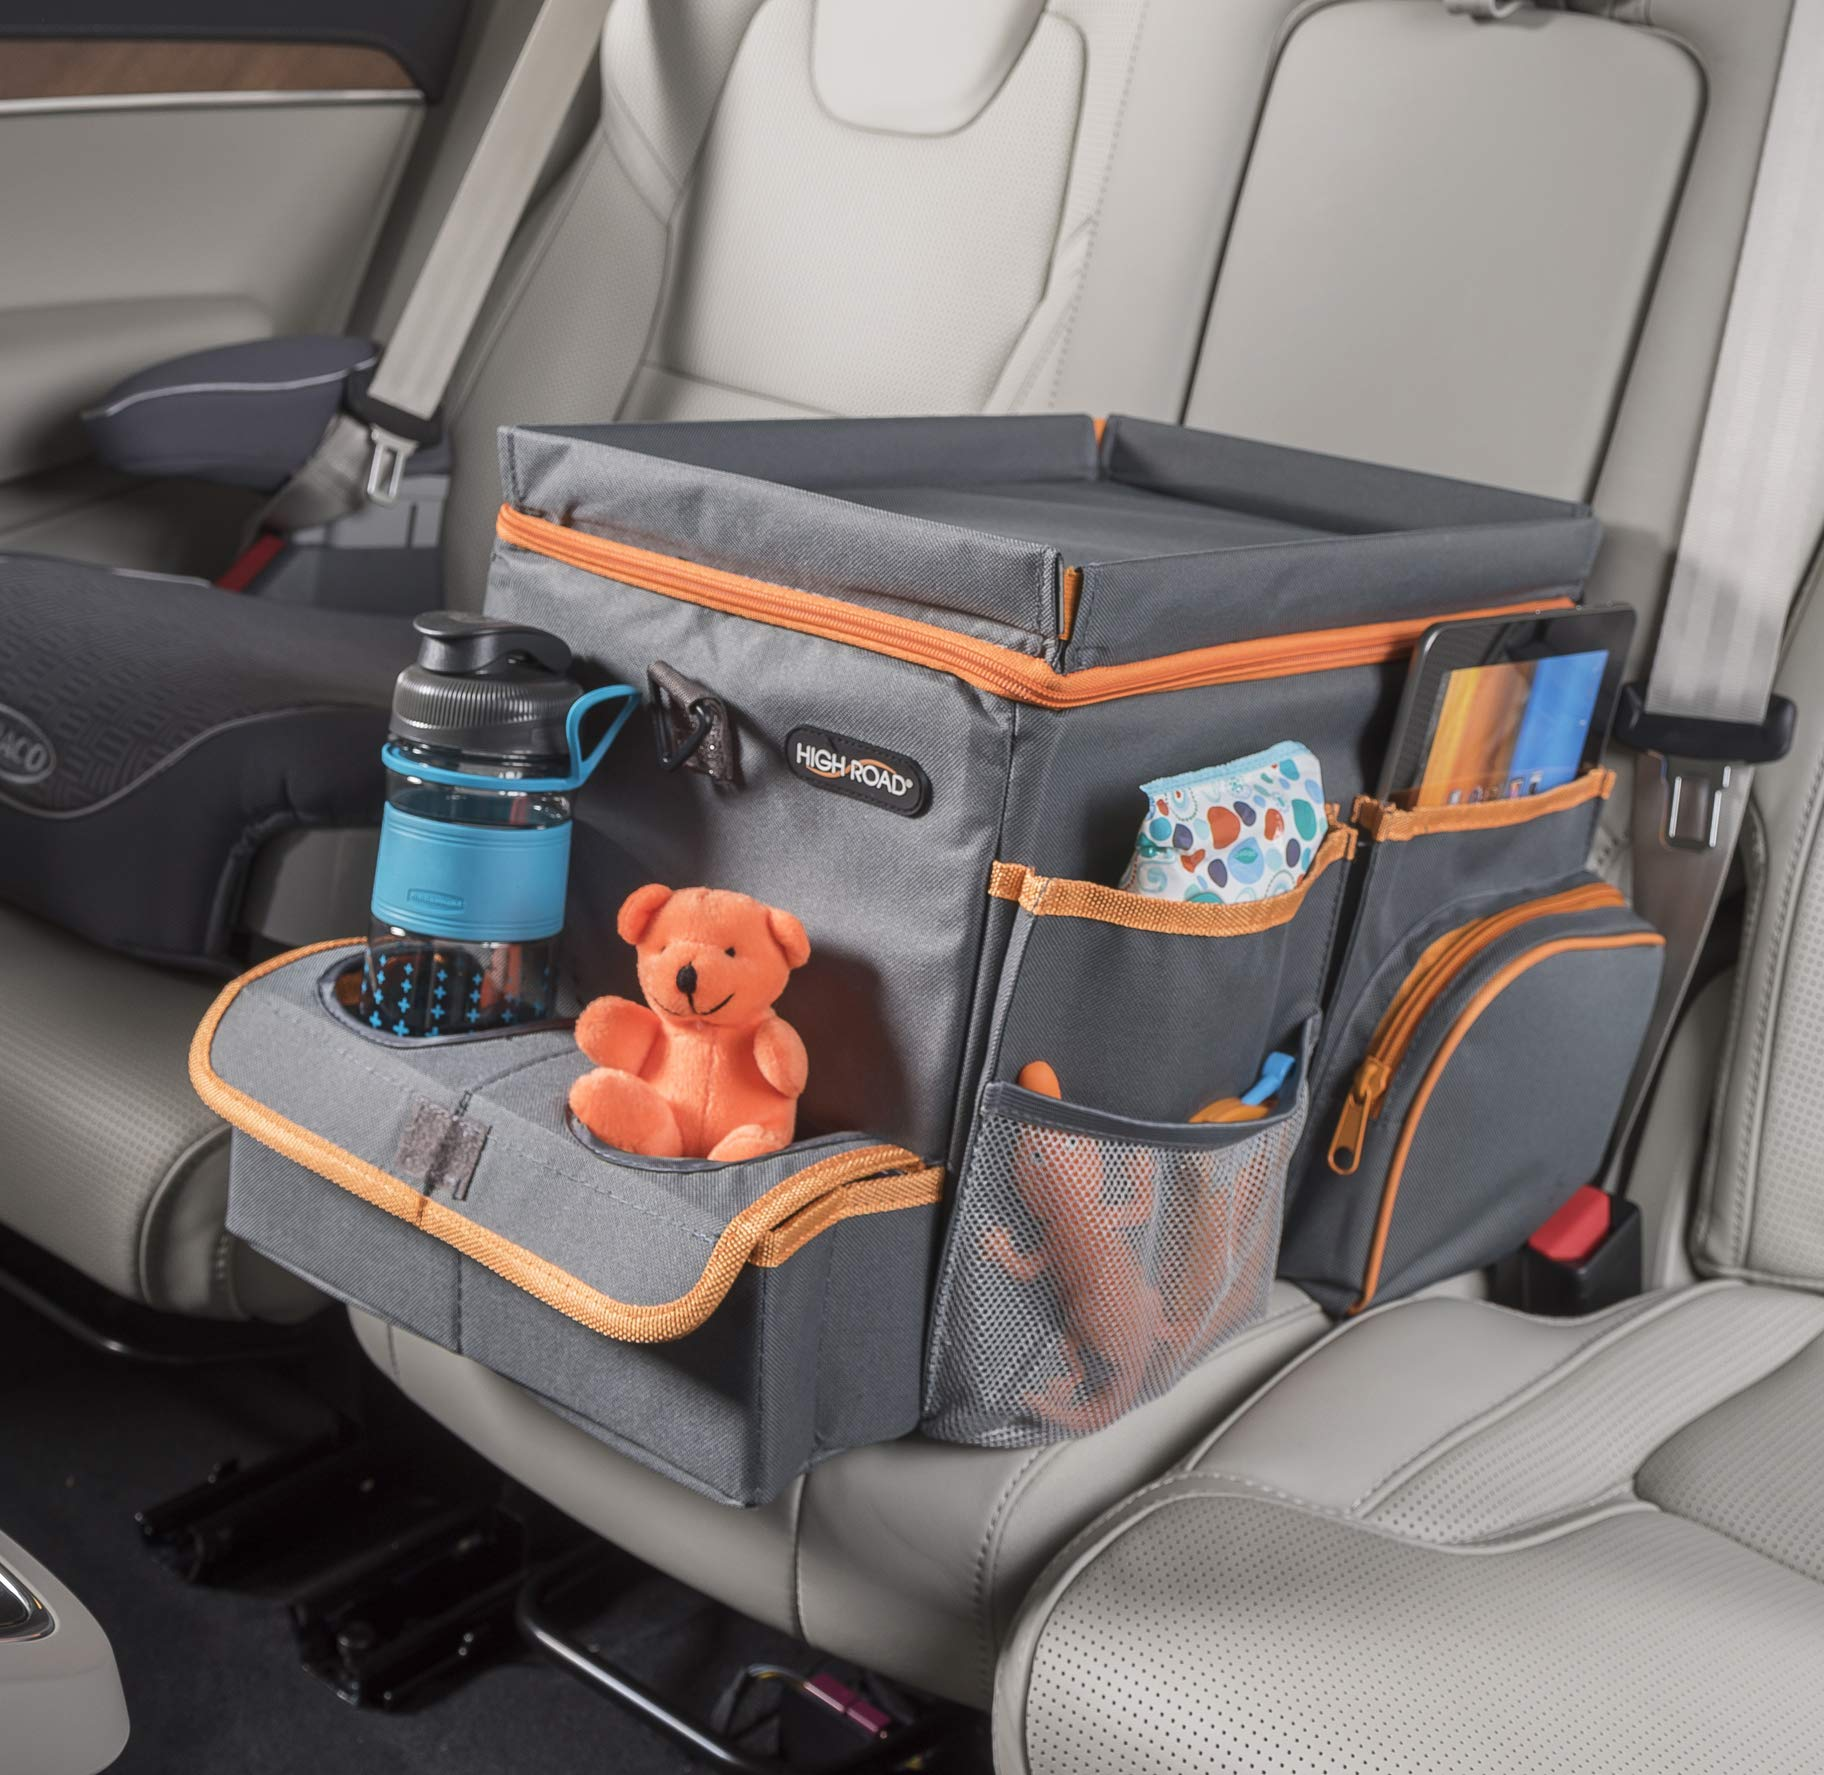 High Road Car Organizer for Kids with Cooler and Snack Tray (Gray) by High Road